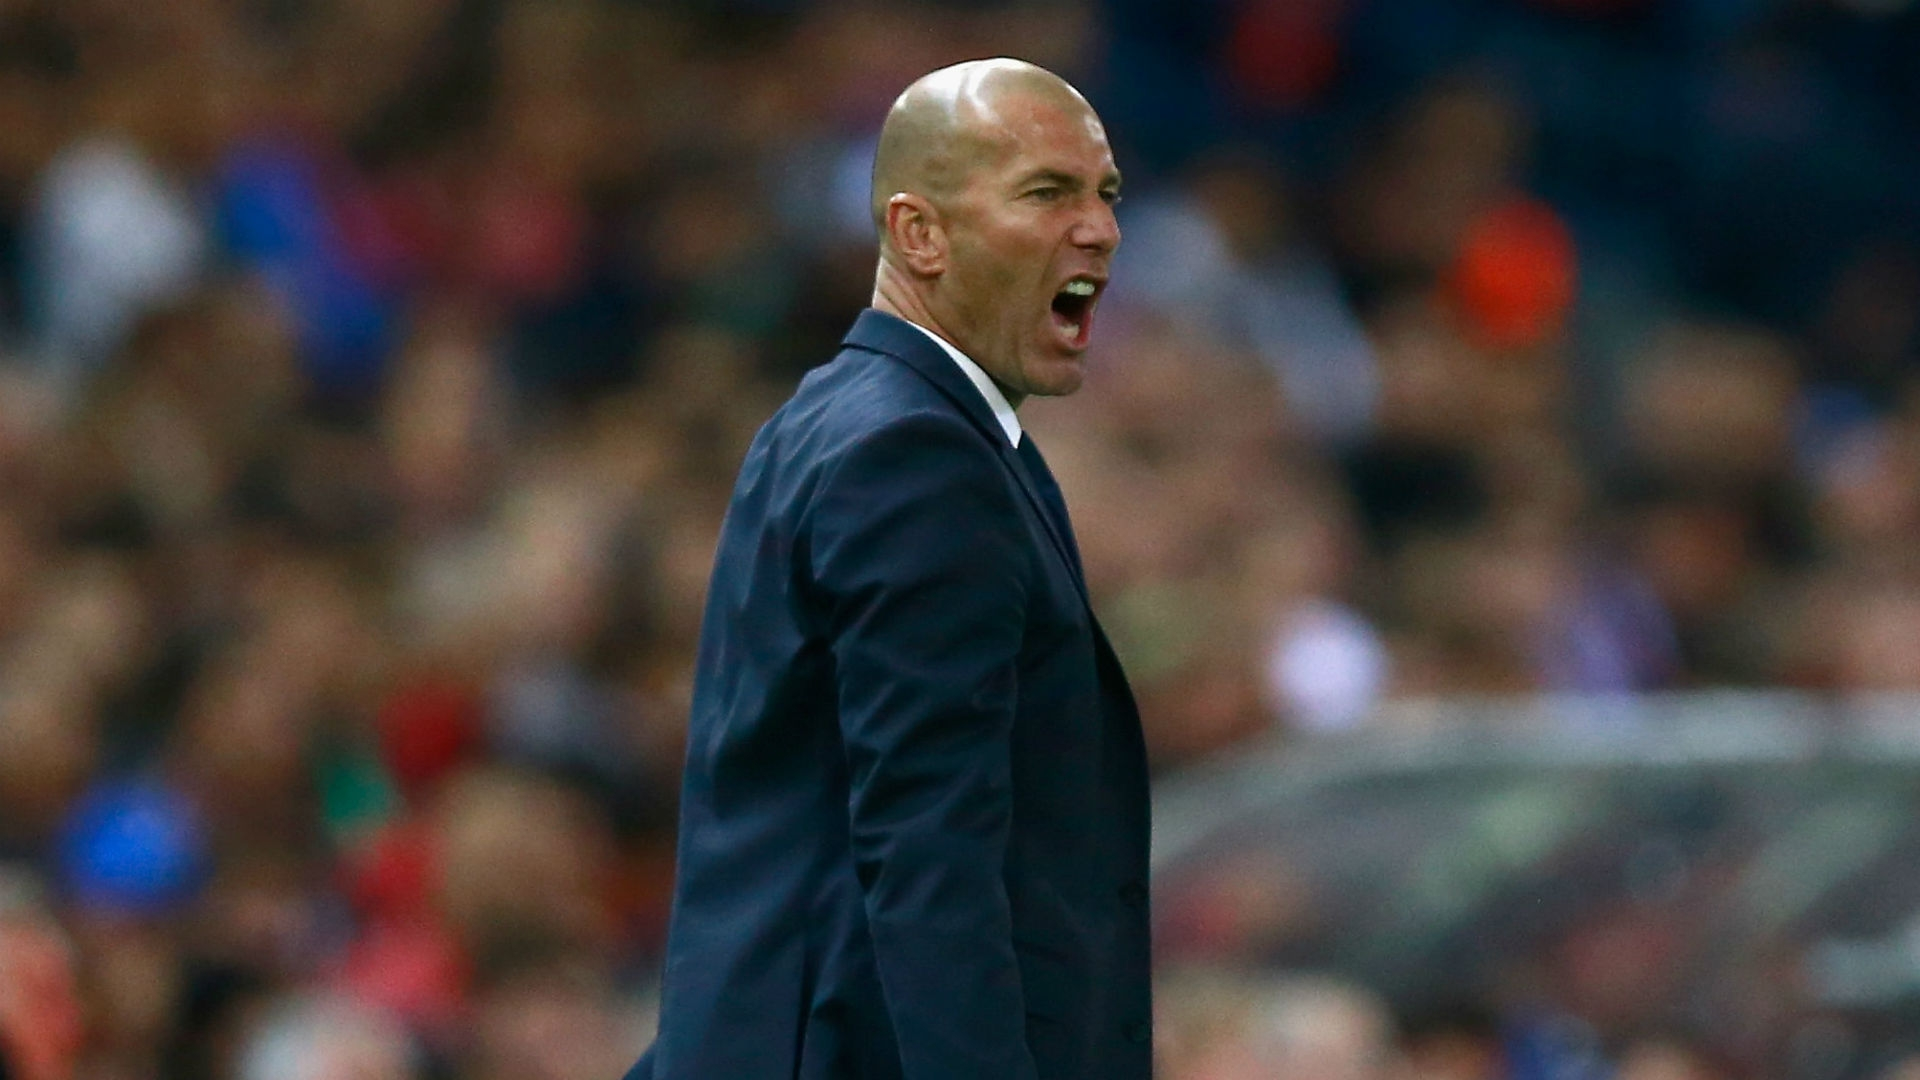 Zidane brings Real into new UCL final